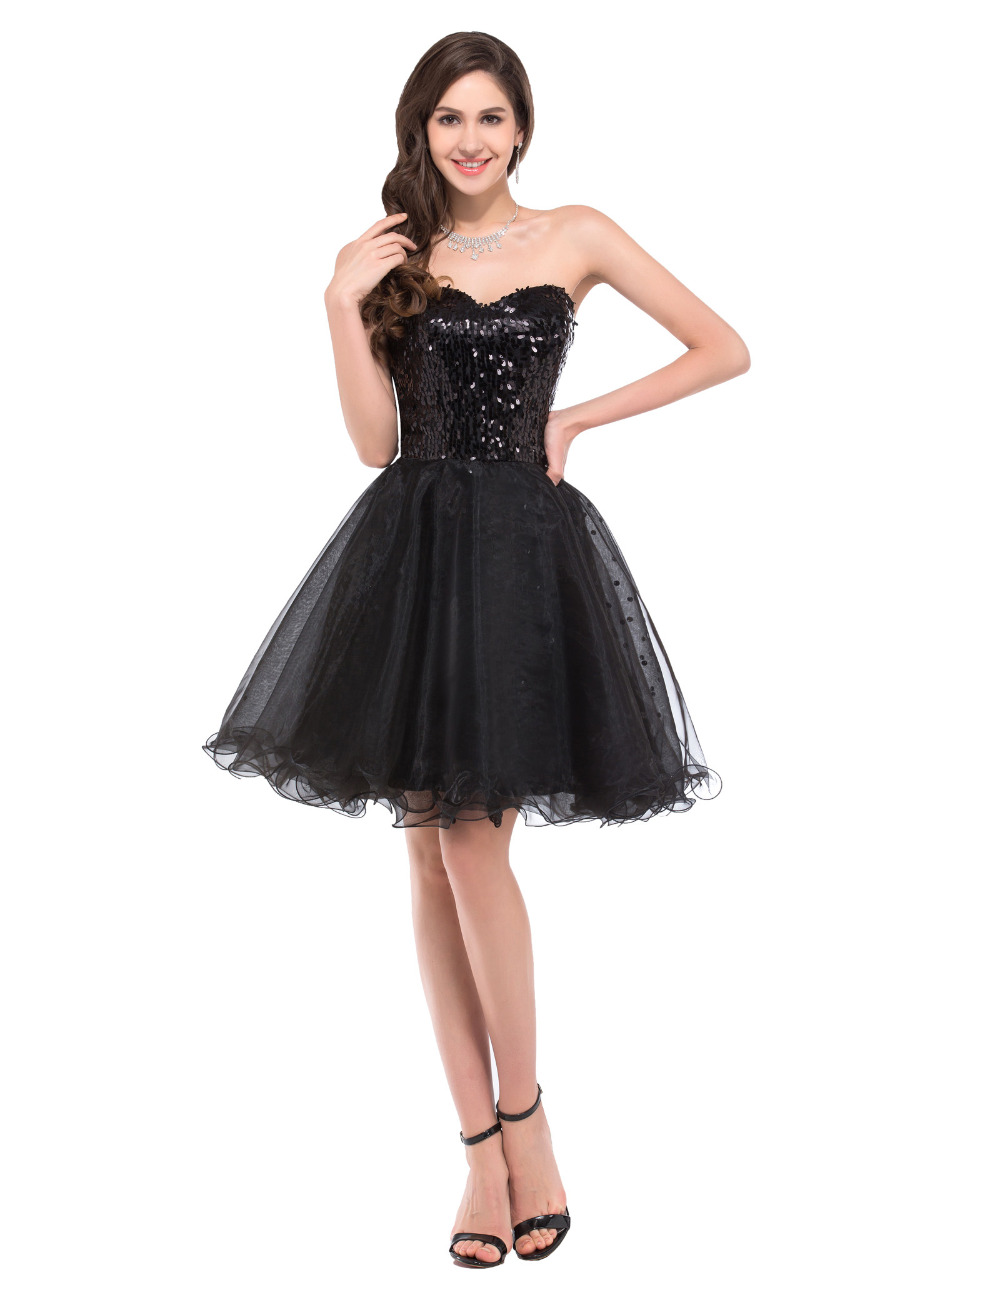 Black Gold Winter Formal Dresses Short - Dress images